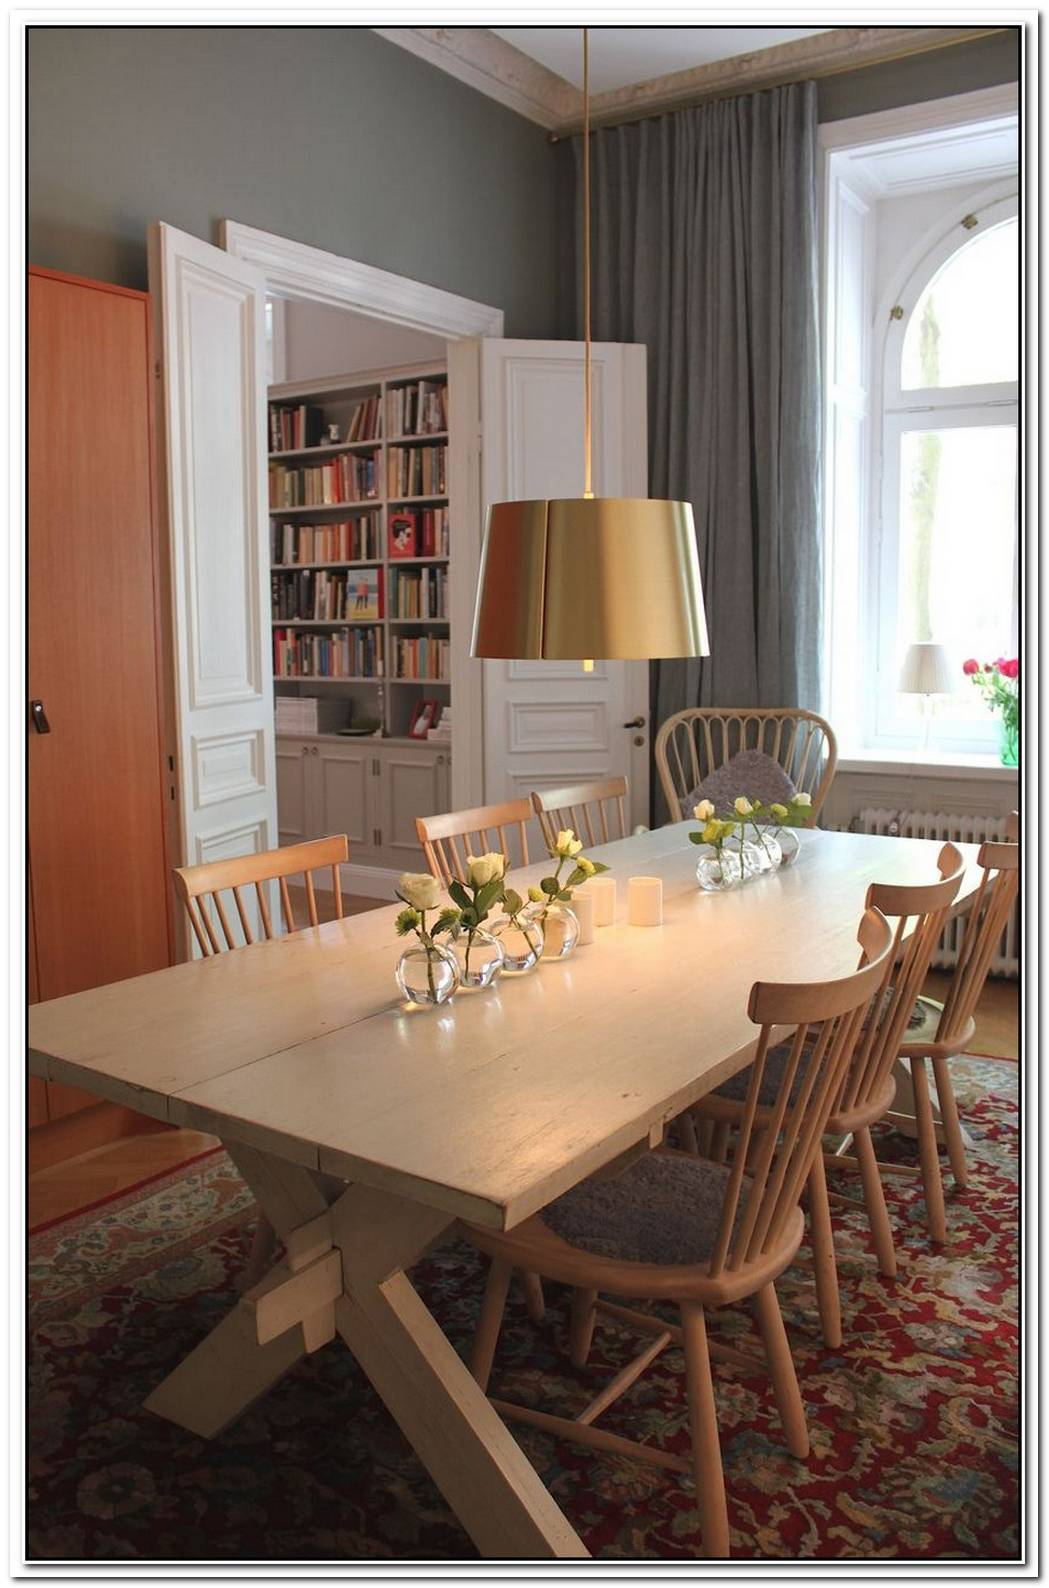 Spacious Studio Apartment In Vasastaden For Rental